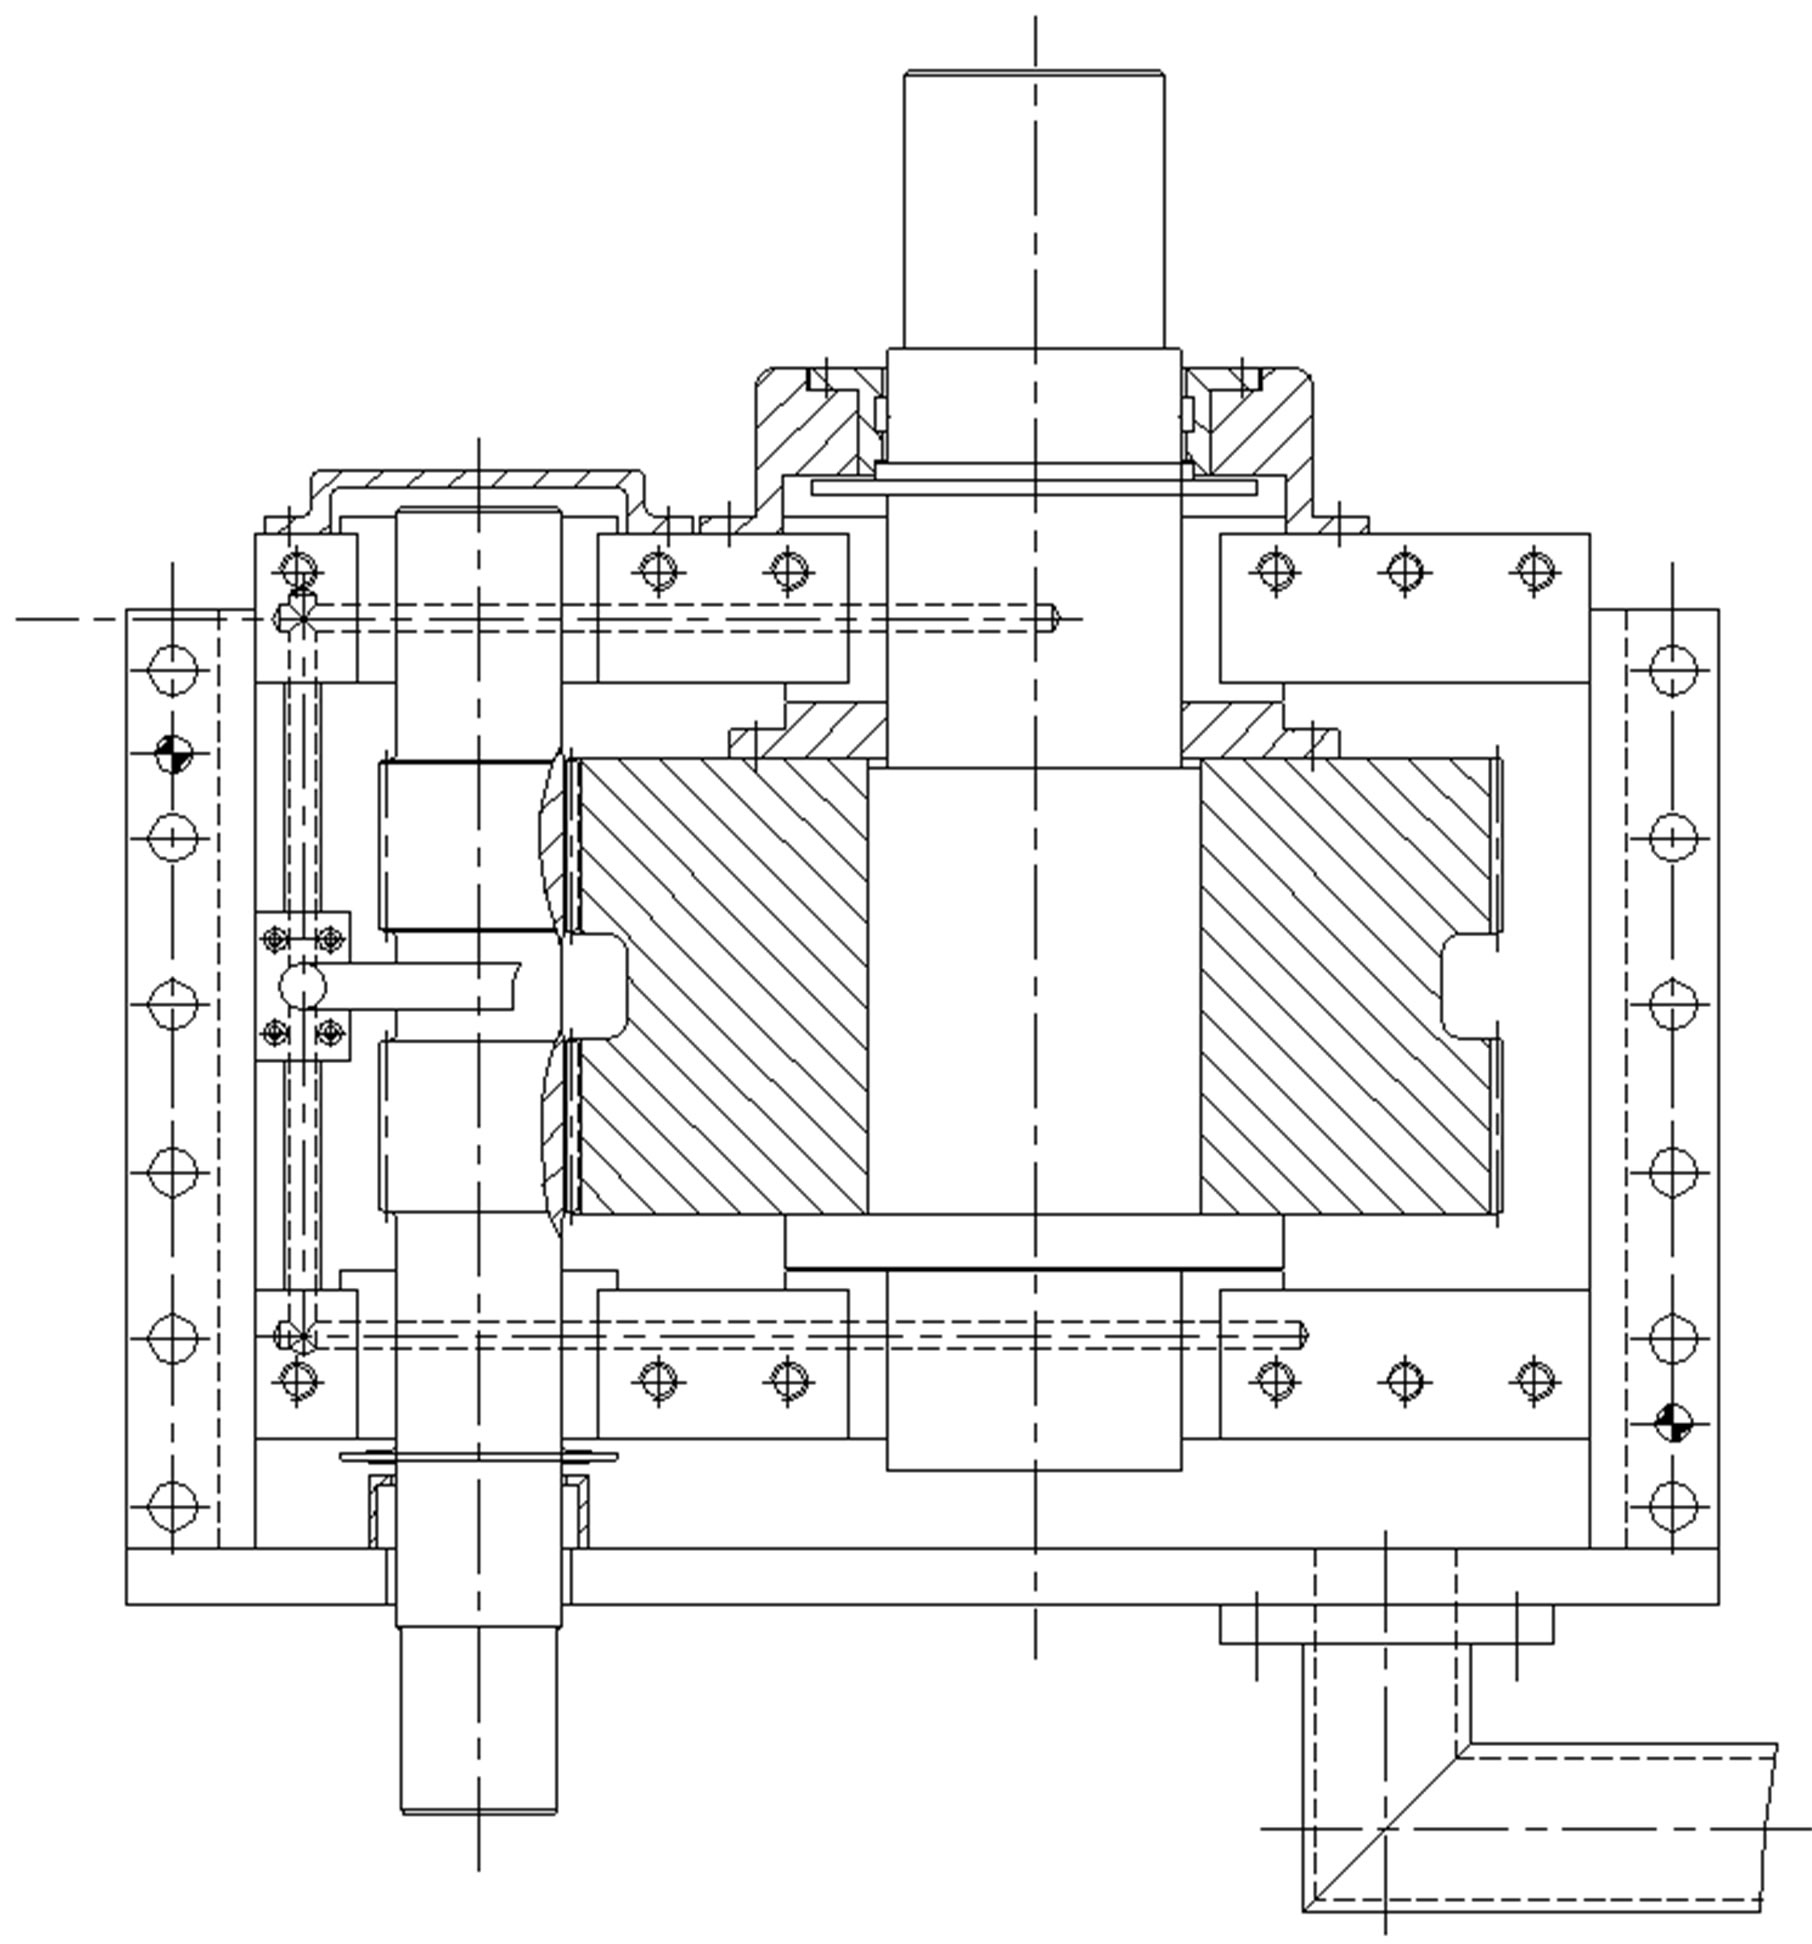 diagram for motor and gearbox